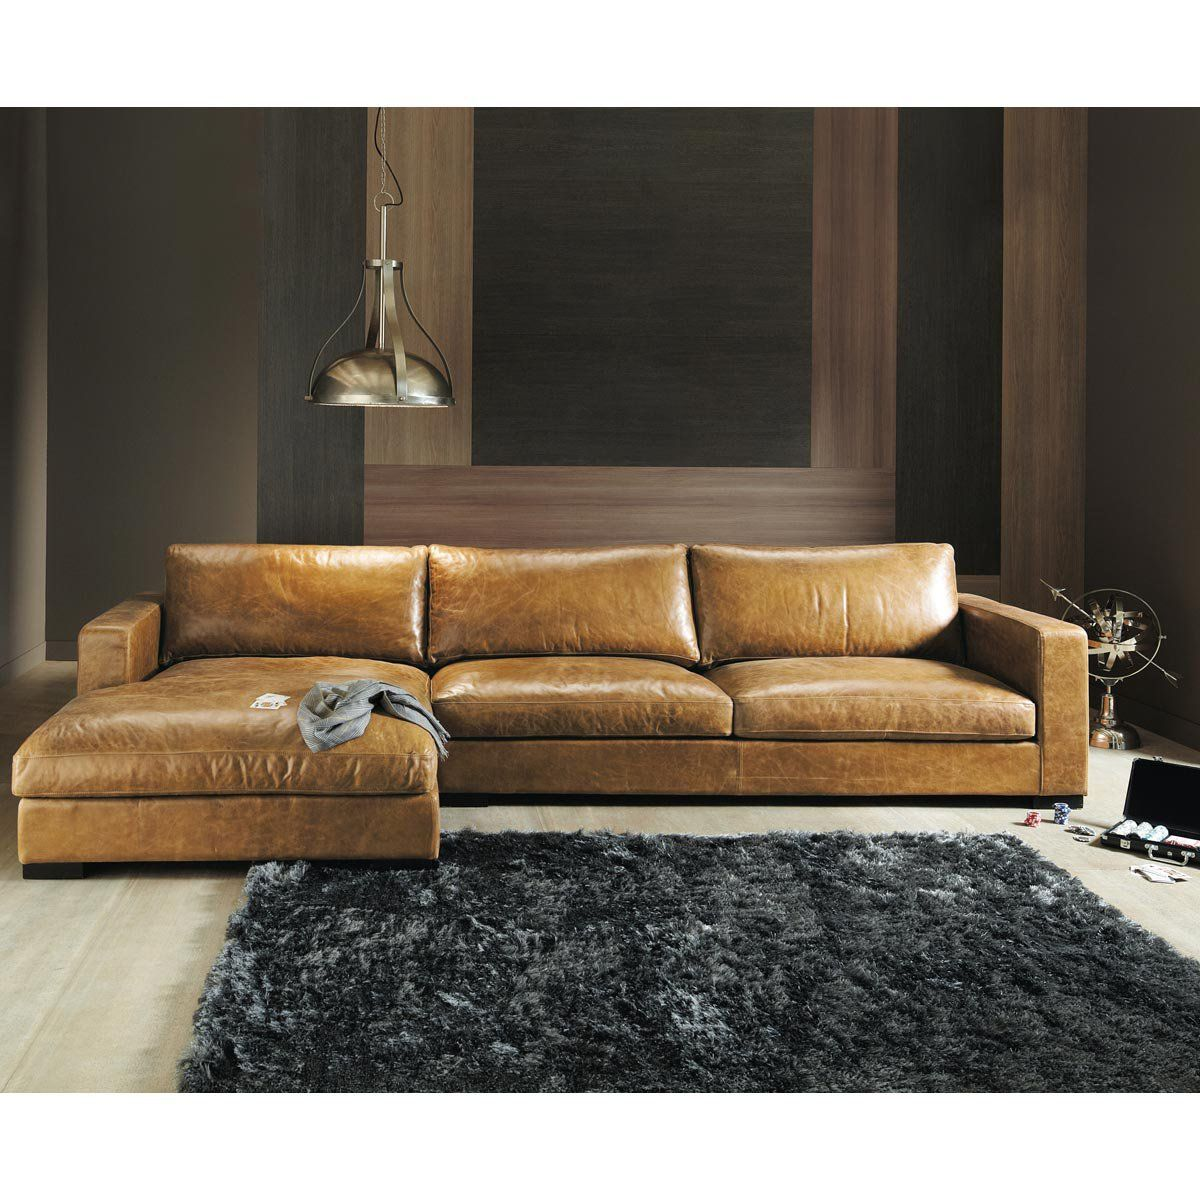 amazon furniture dp com kitchen dining pcs brown leather sectional real yywbl usa global piece